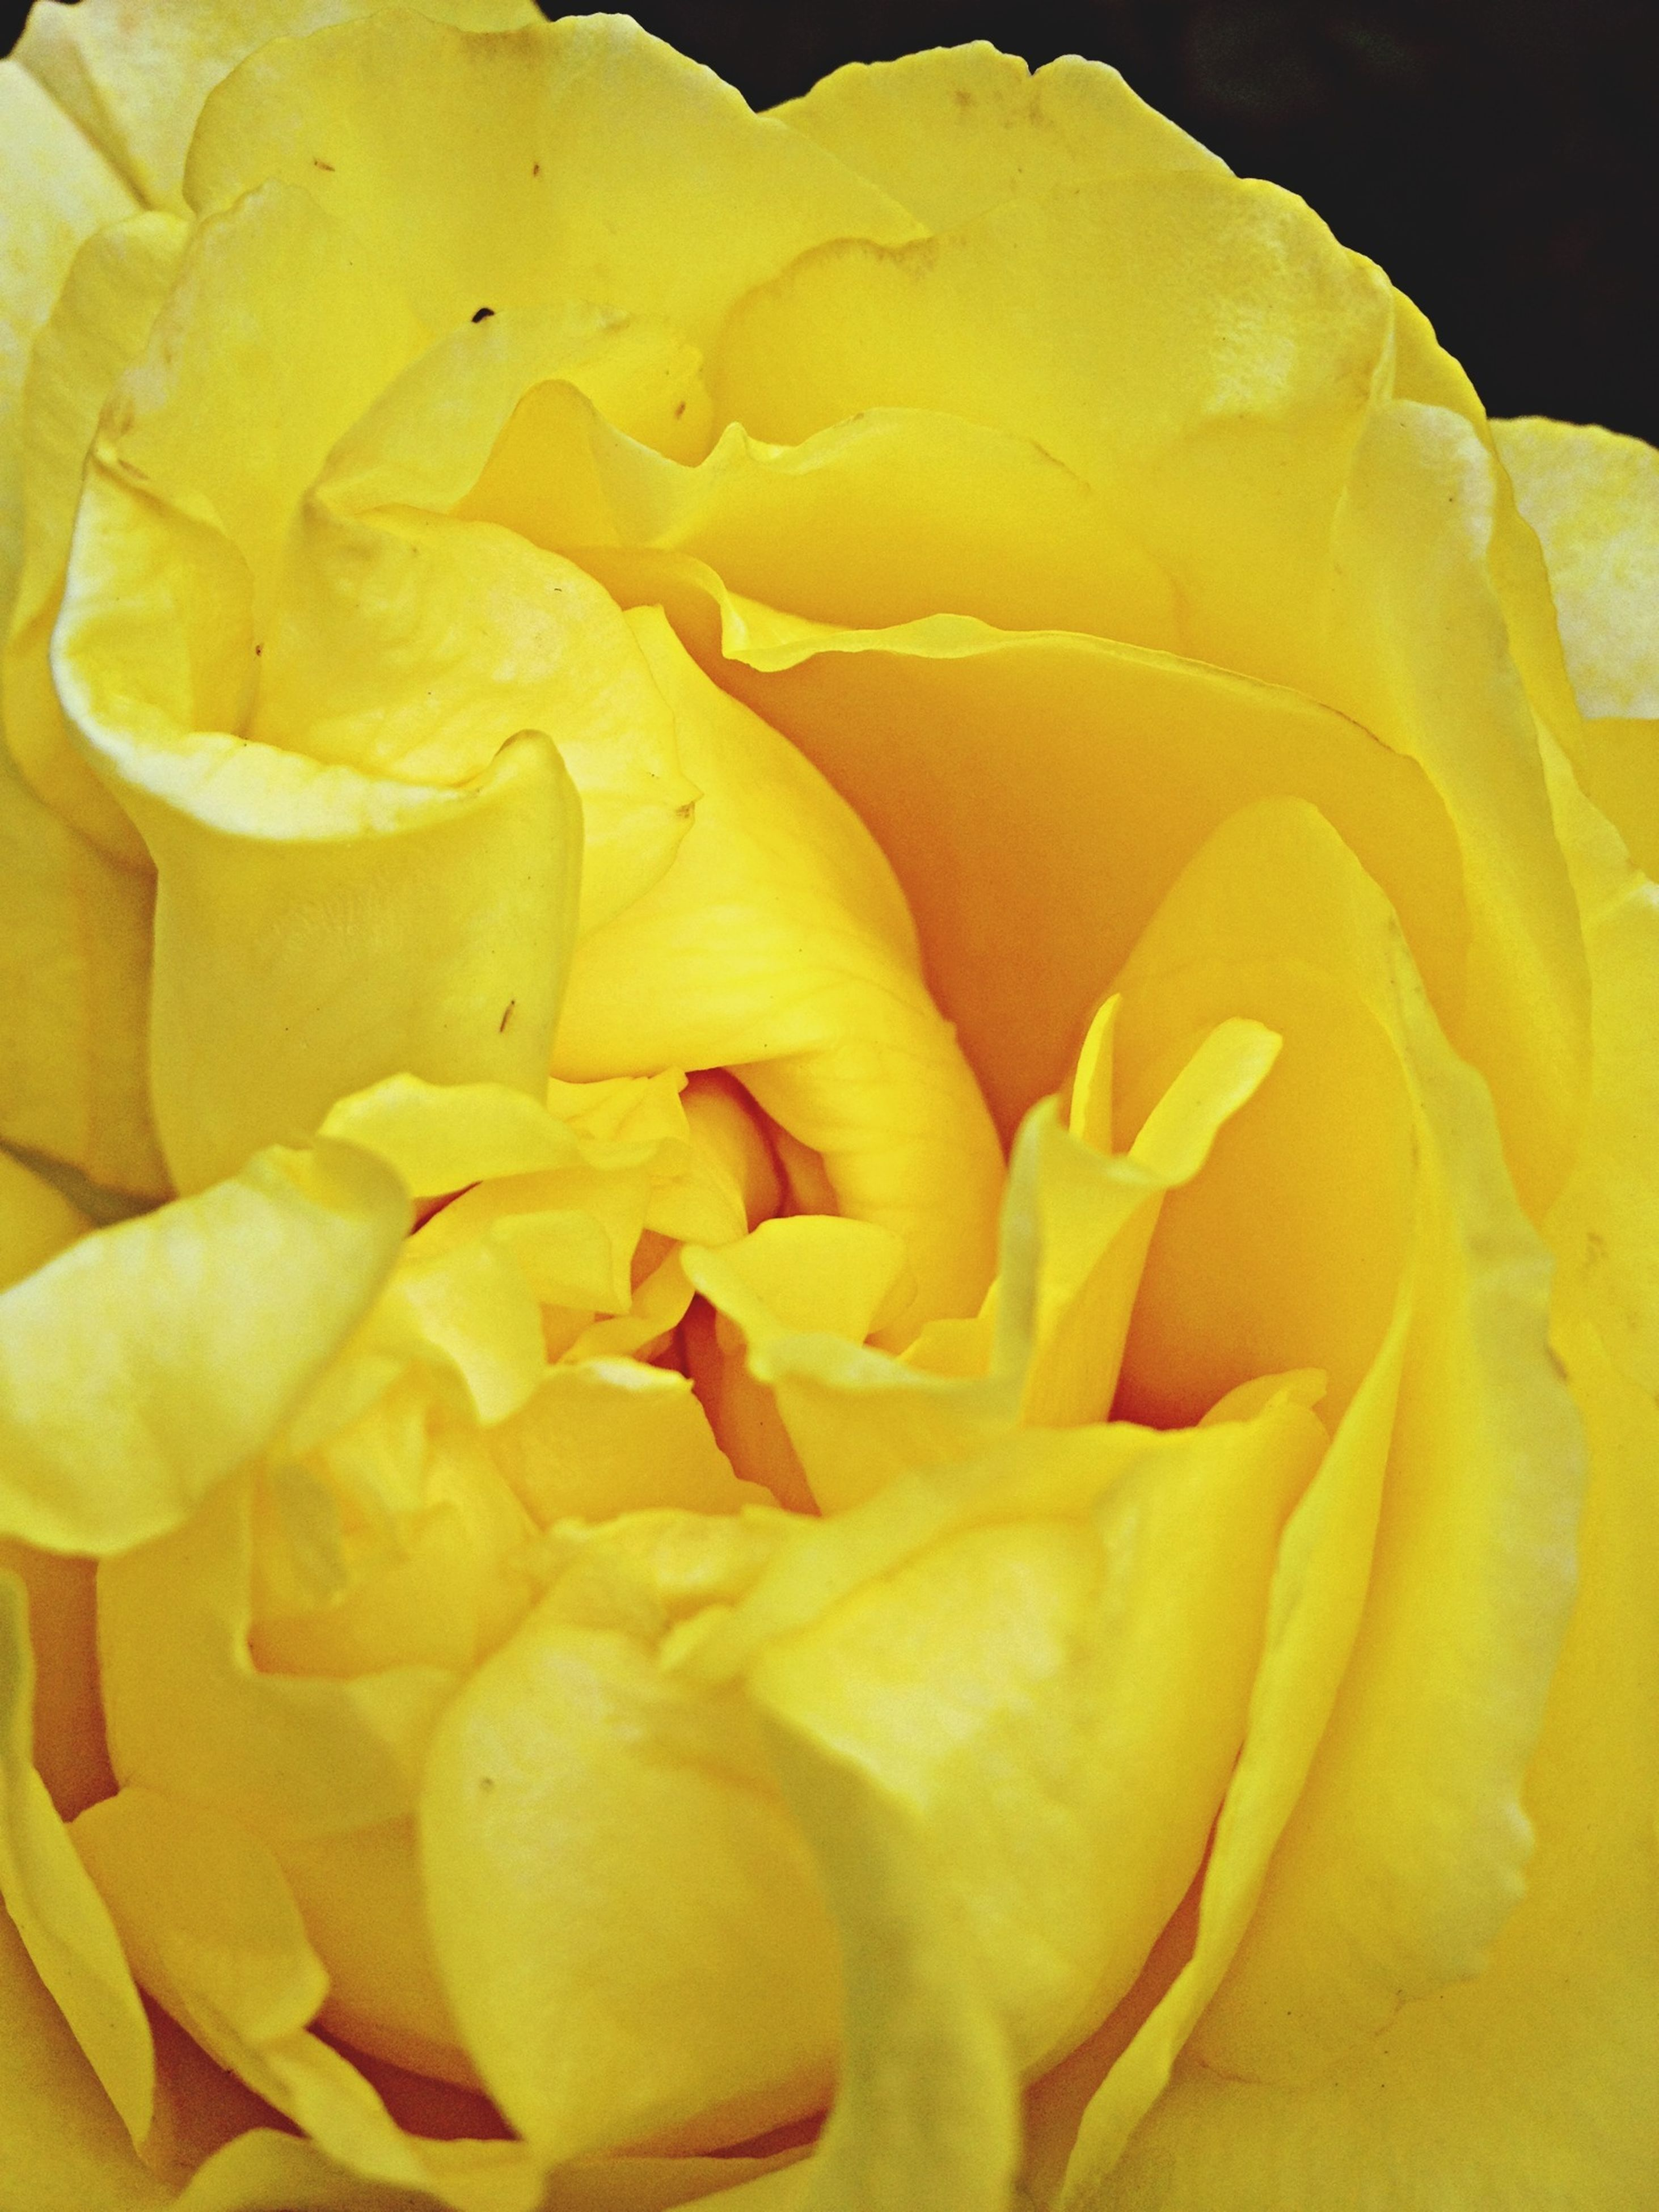 flower, petal, yellow, flower head, freshness, fragility, rose - flower, close-up, beauty in nature, single flower, nature, growth, blooming, rose, full frame, natural pattern, backgrounds, no people, in bloom, single rose